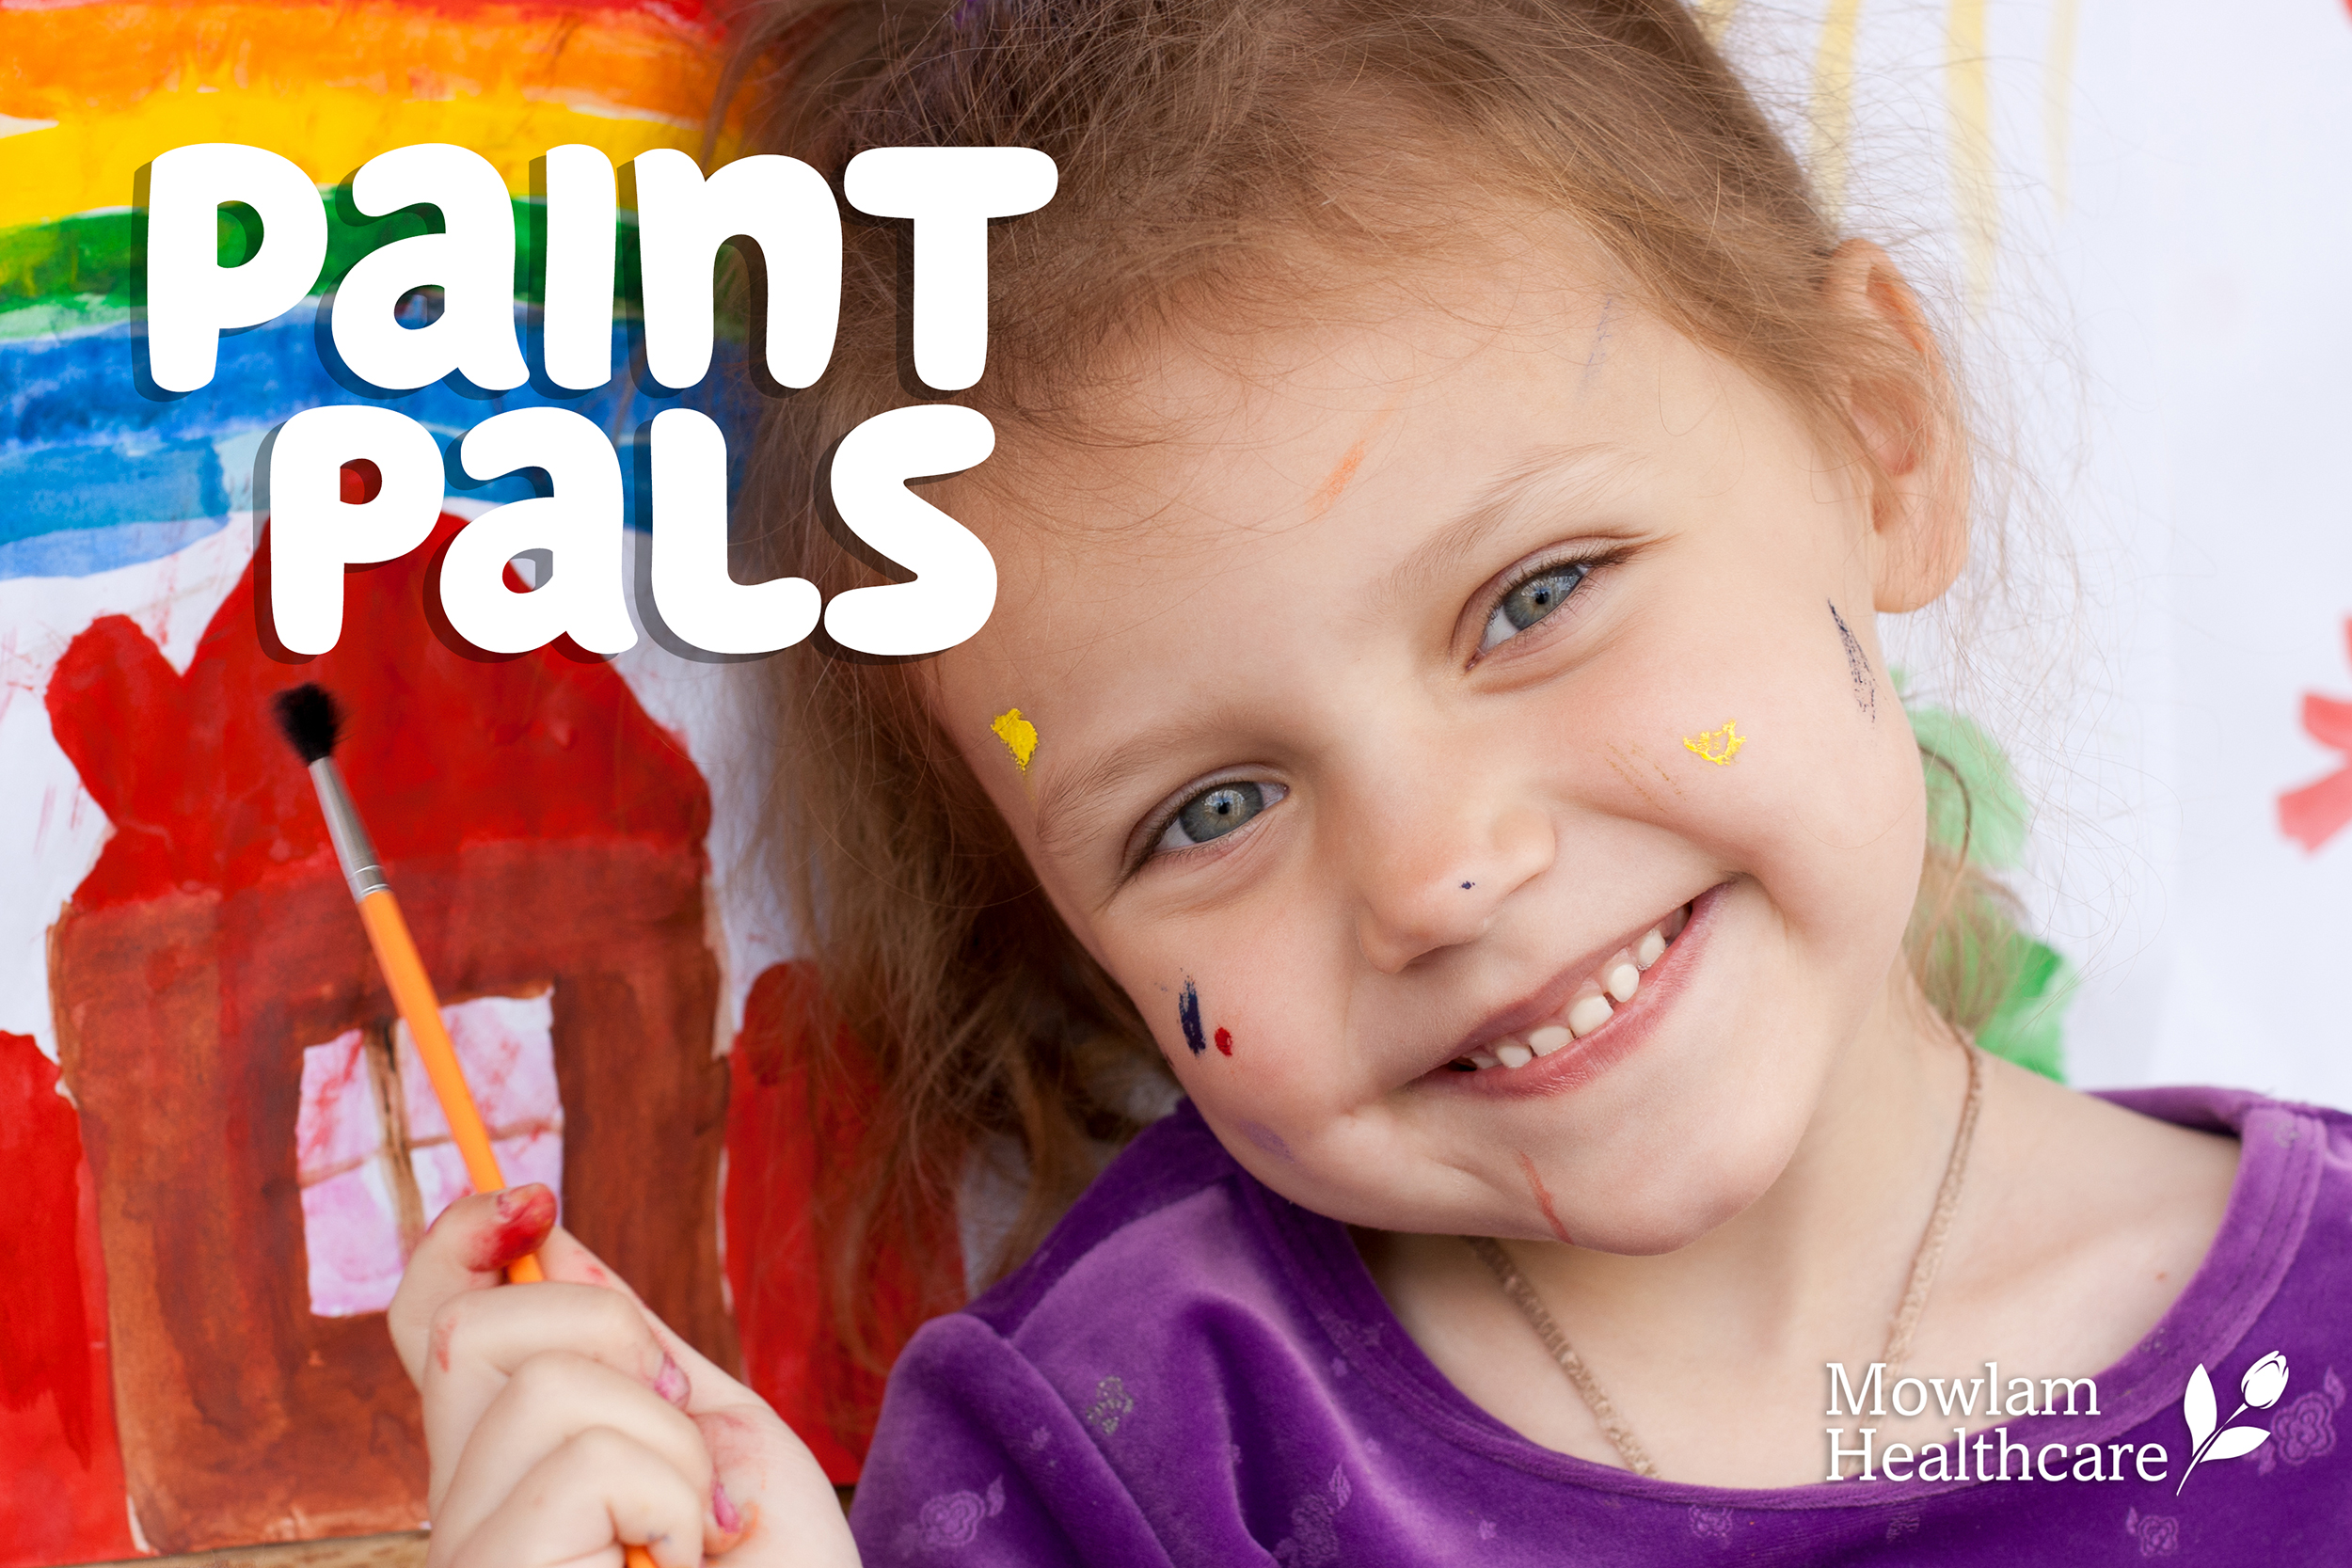 paint pals, intergenerational, art, painting, drawing, nursing homes, nursing home, covid, visitor restrictions, NHI, mowlam, mowlam healthcare